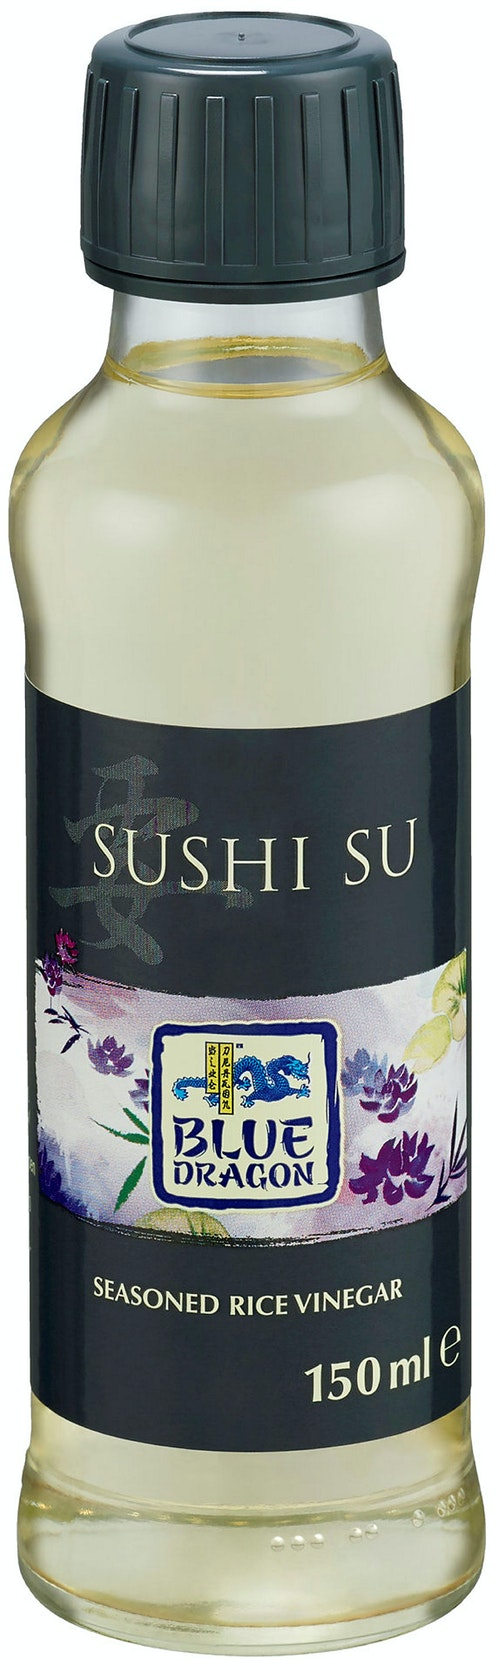 Blue Dragon Sushi Su 150 ml